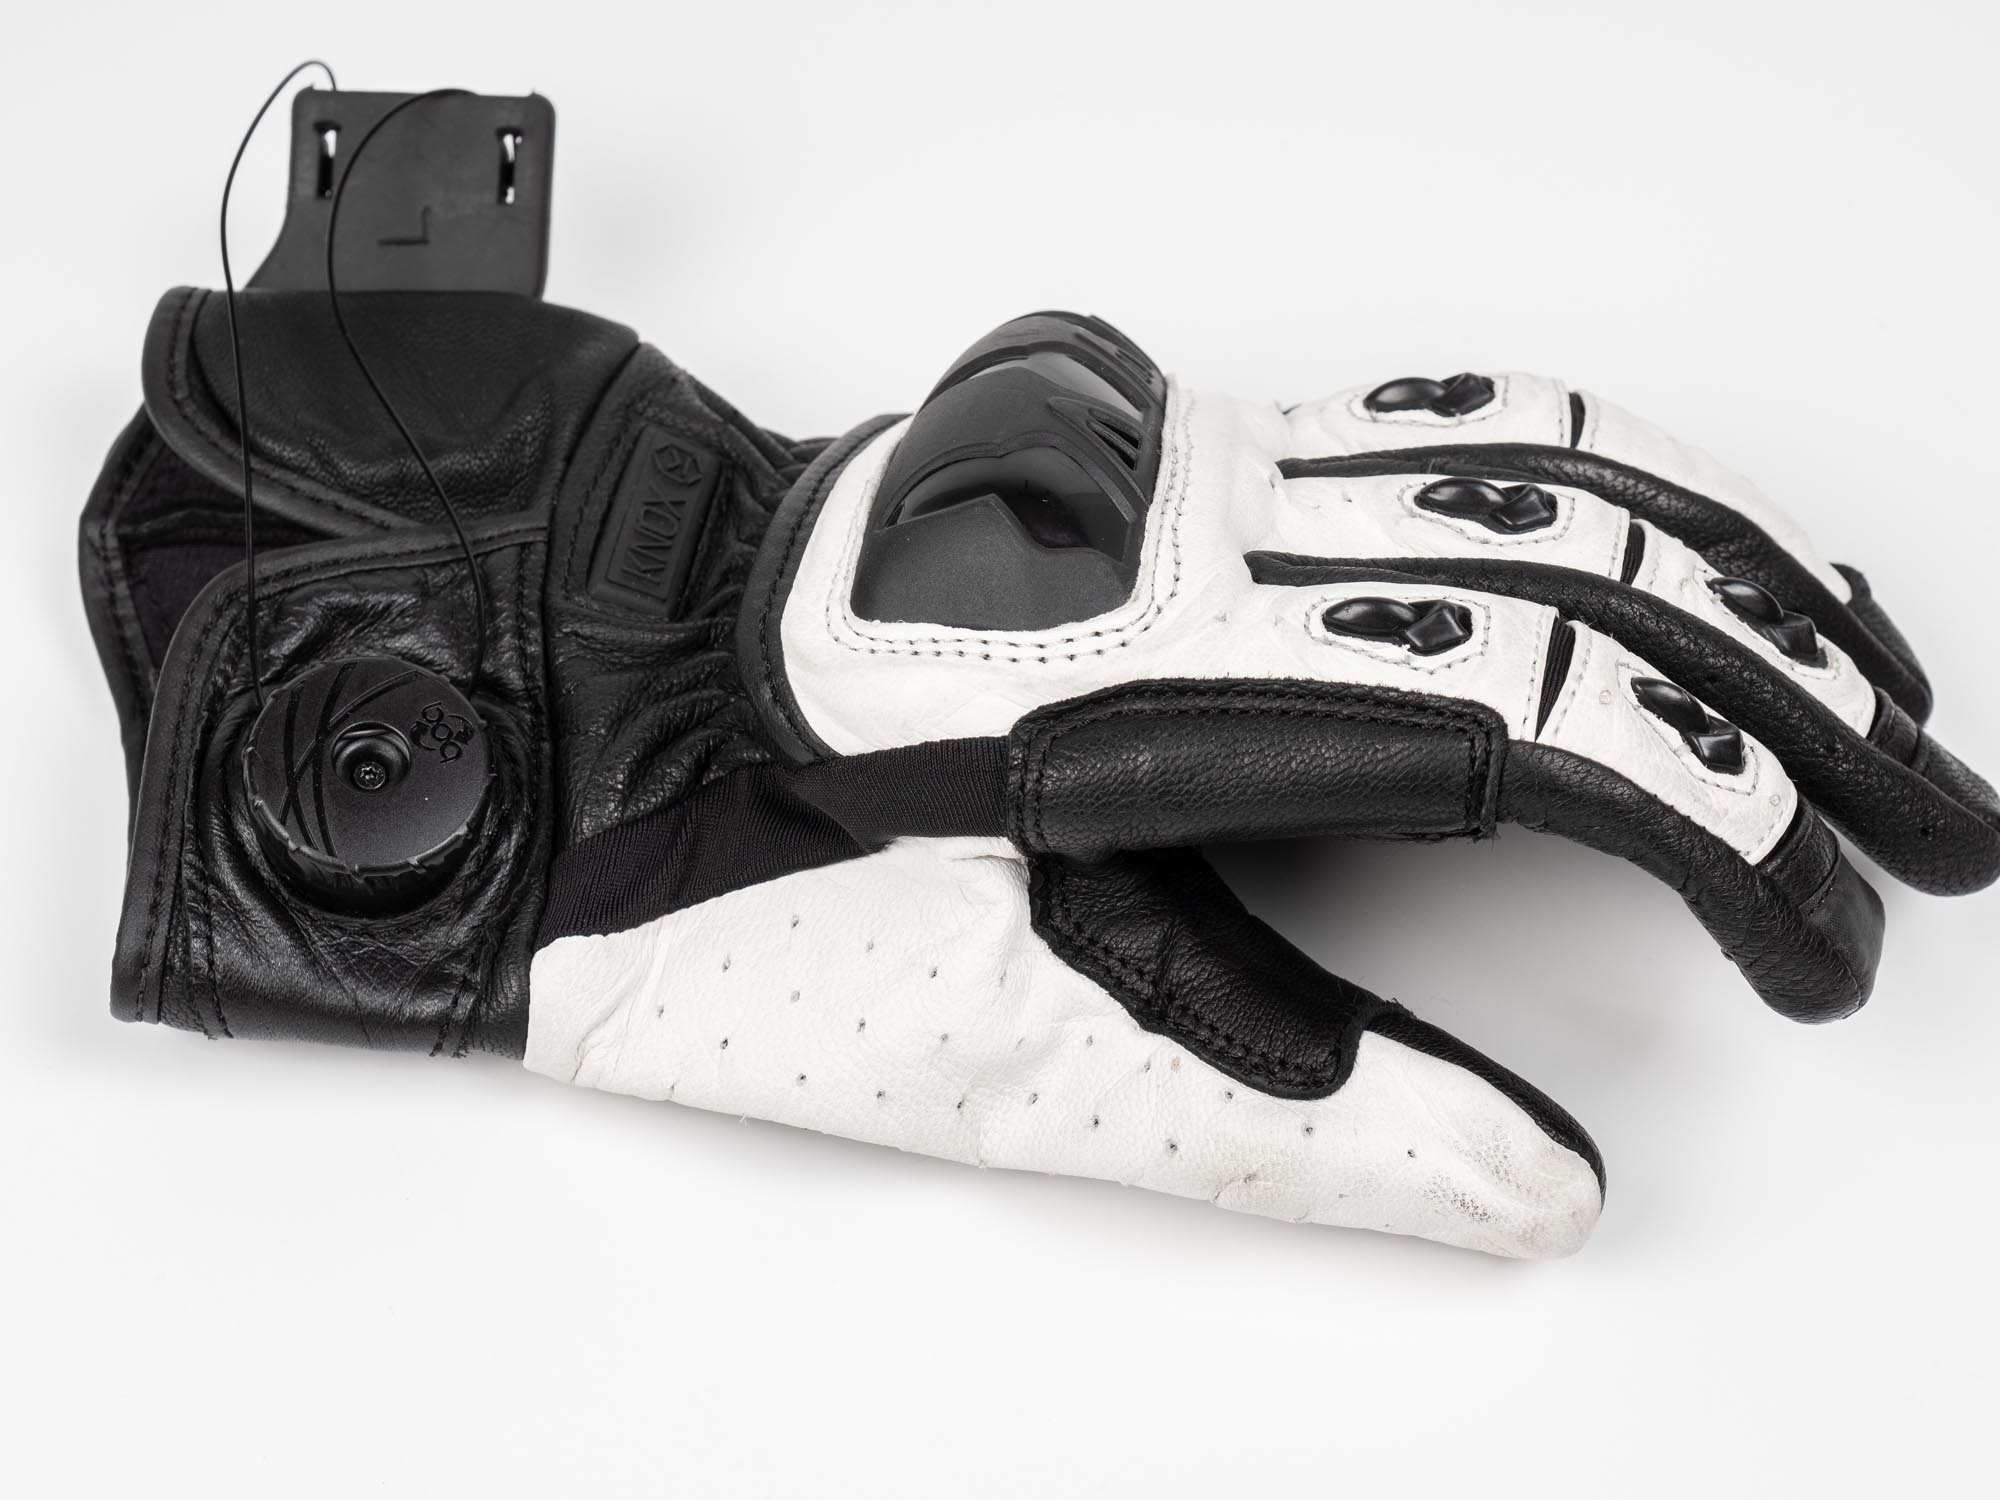 Knox Orsa Leather MKII Gloves Review – Motorcycle Words